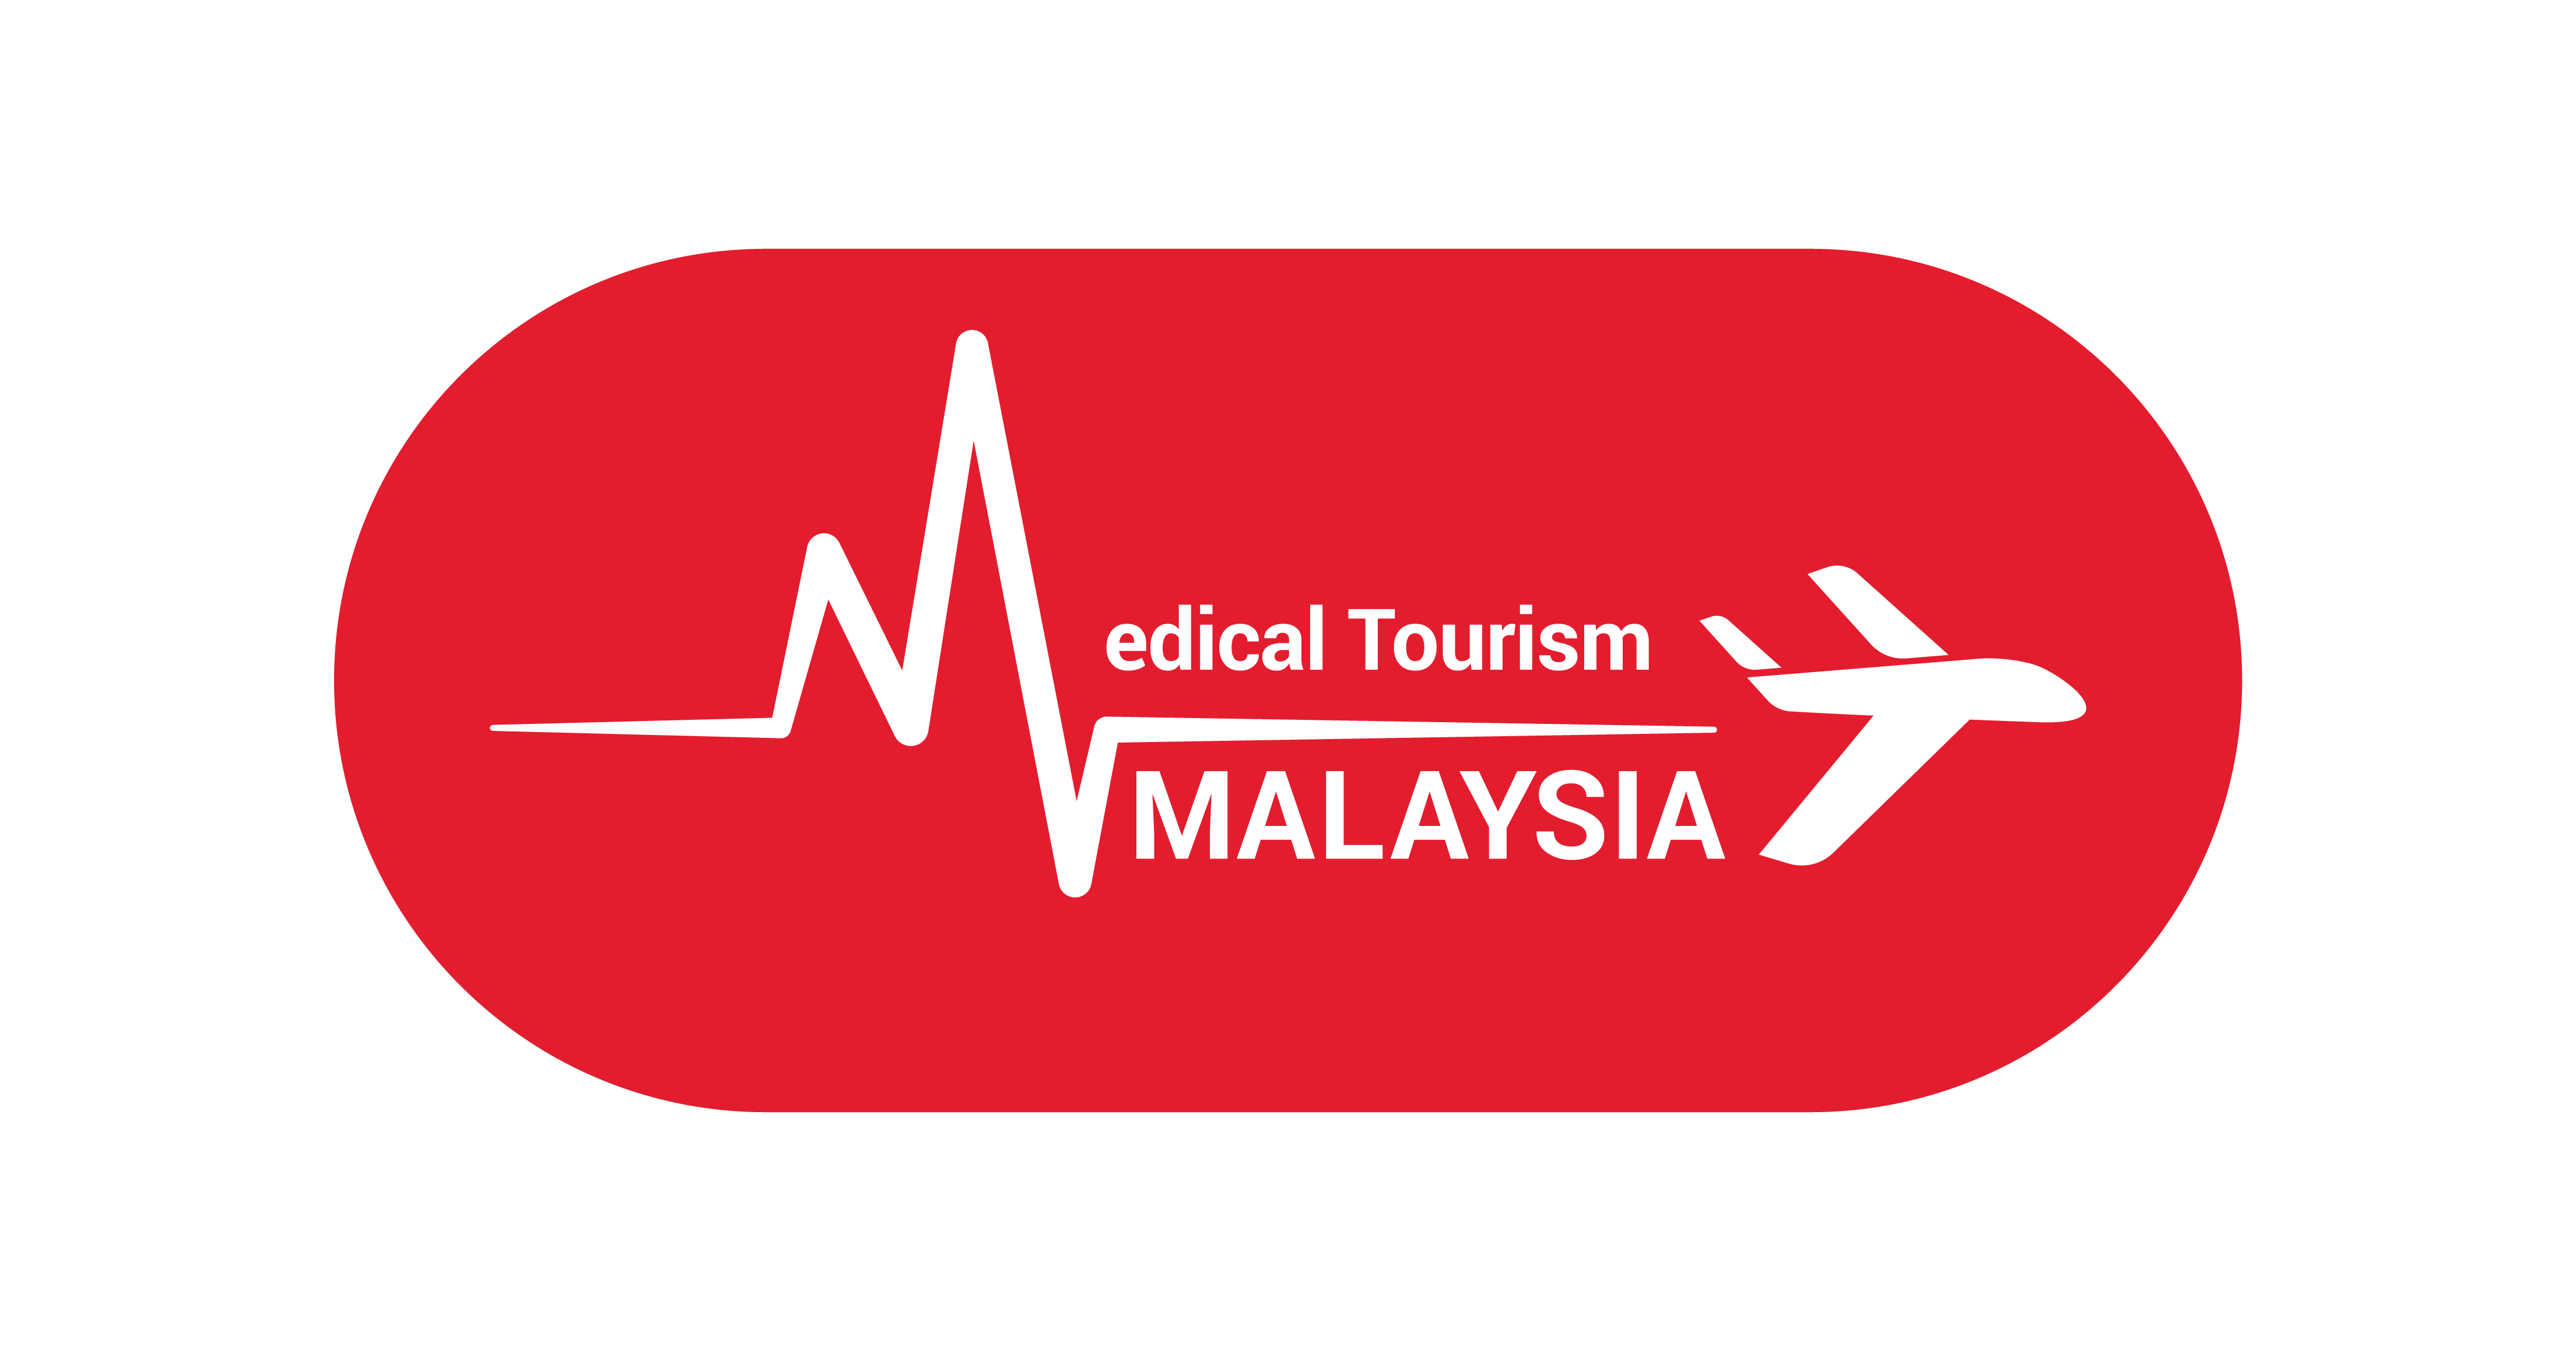 Malaysia Healthcare Travel Council